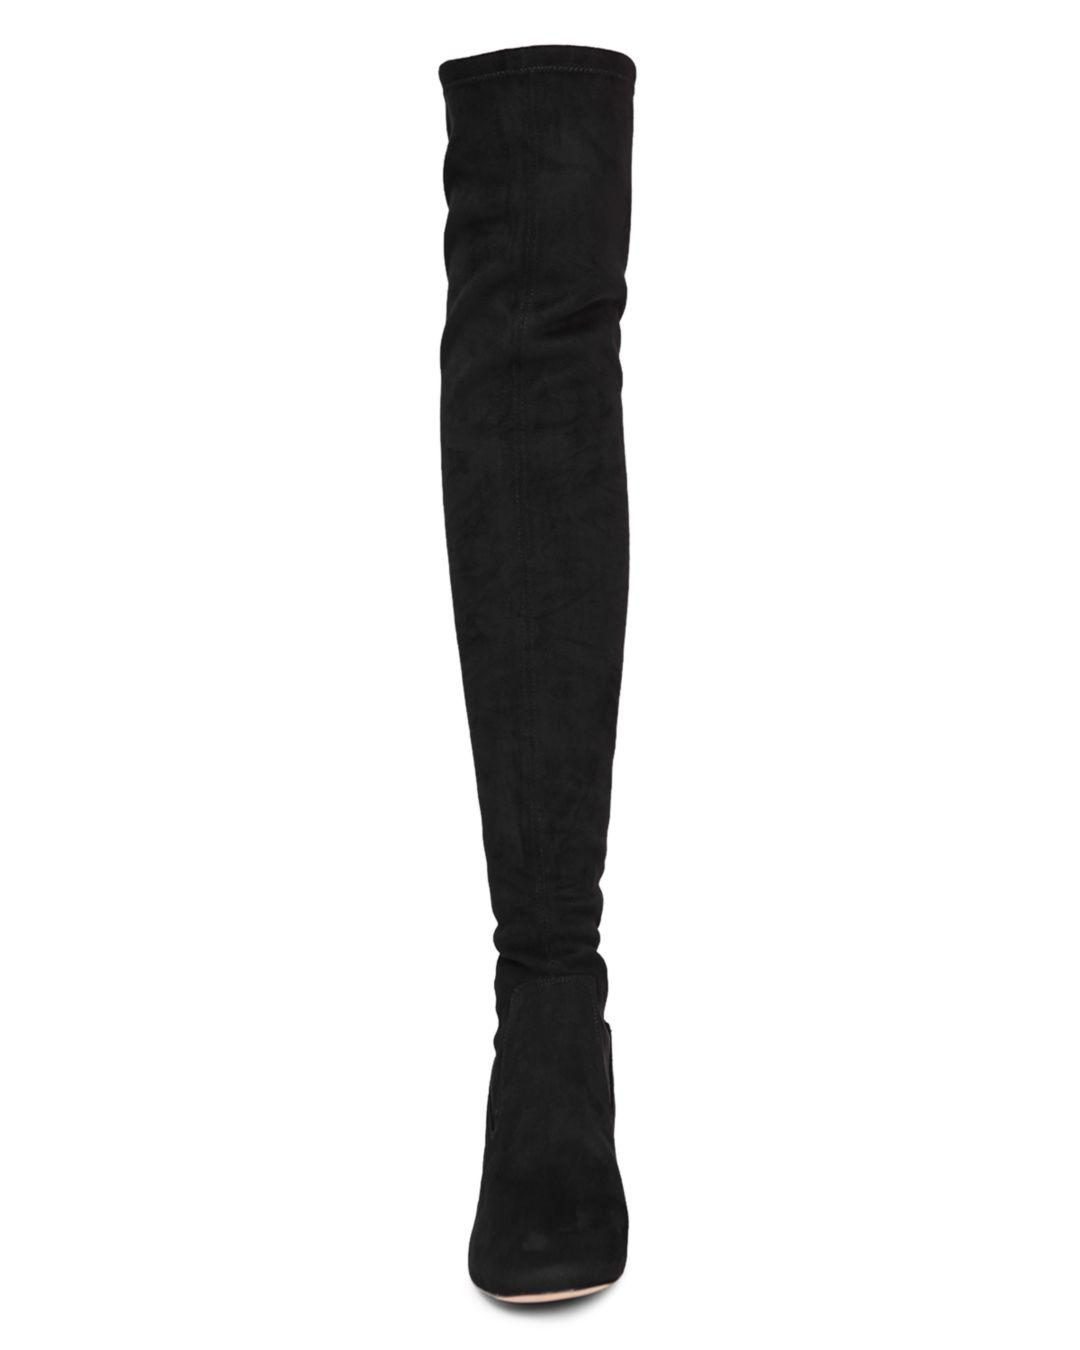 3144ee901a06 Reiss - Black Women s Margi Over-the-knee Suede Boots - Lyst. View  fullscreen